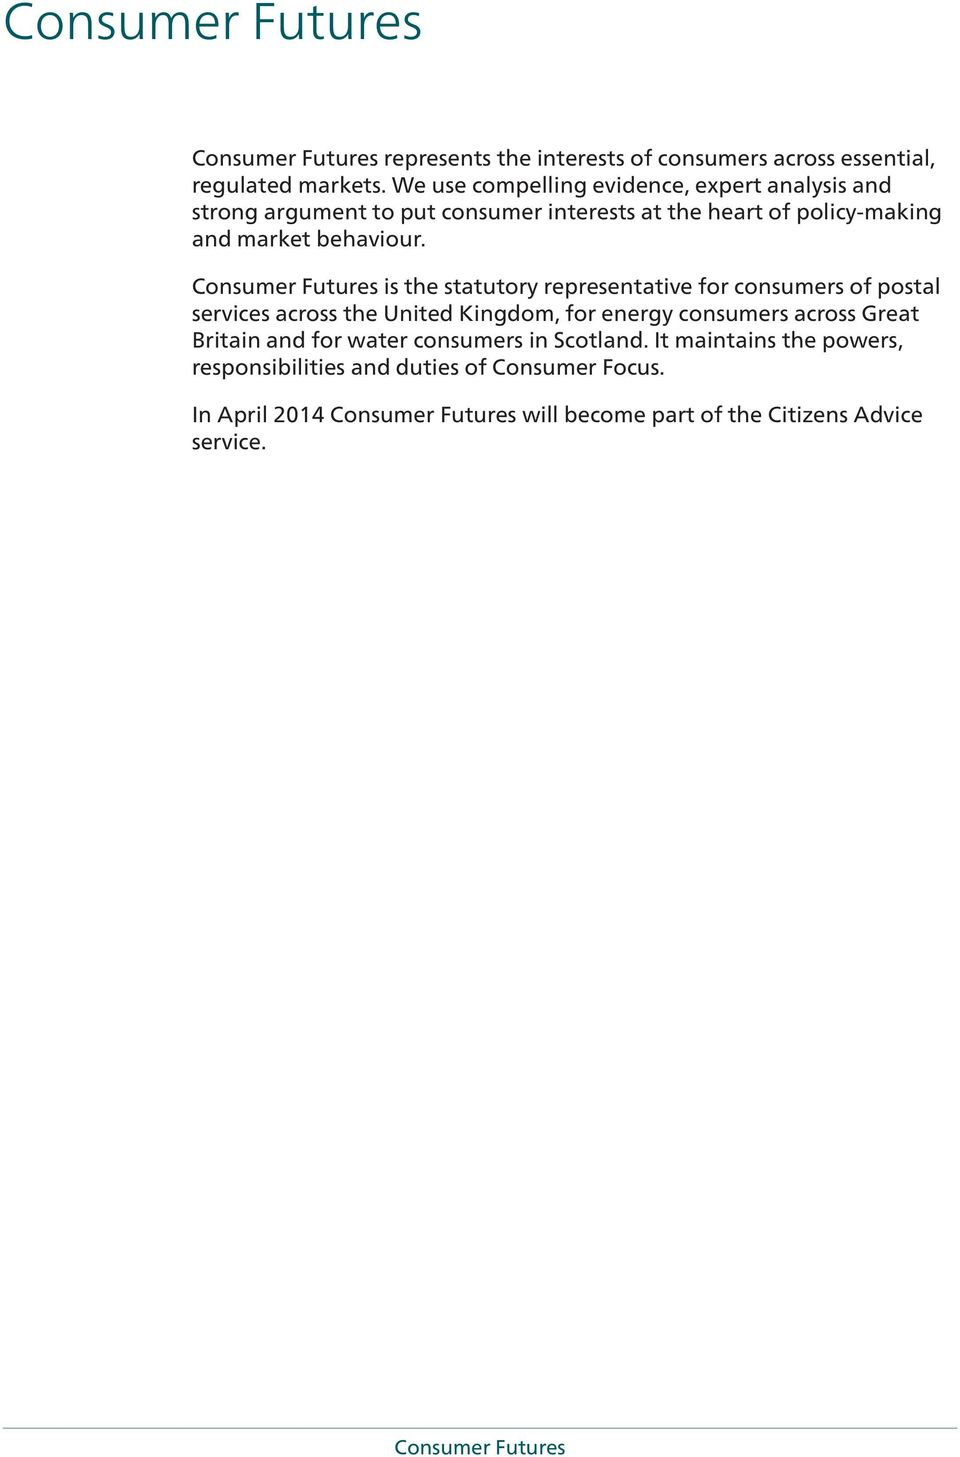 Consumer Futures is the statutory representative for consumers of postal services across the United Kingdom, for energy consumers across Great Britain